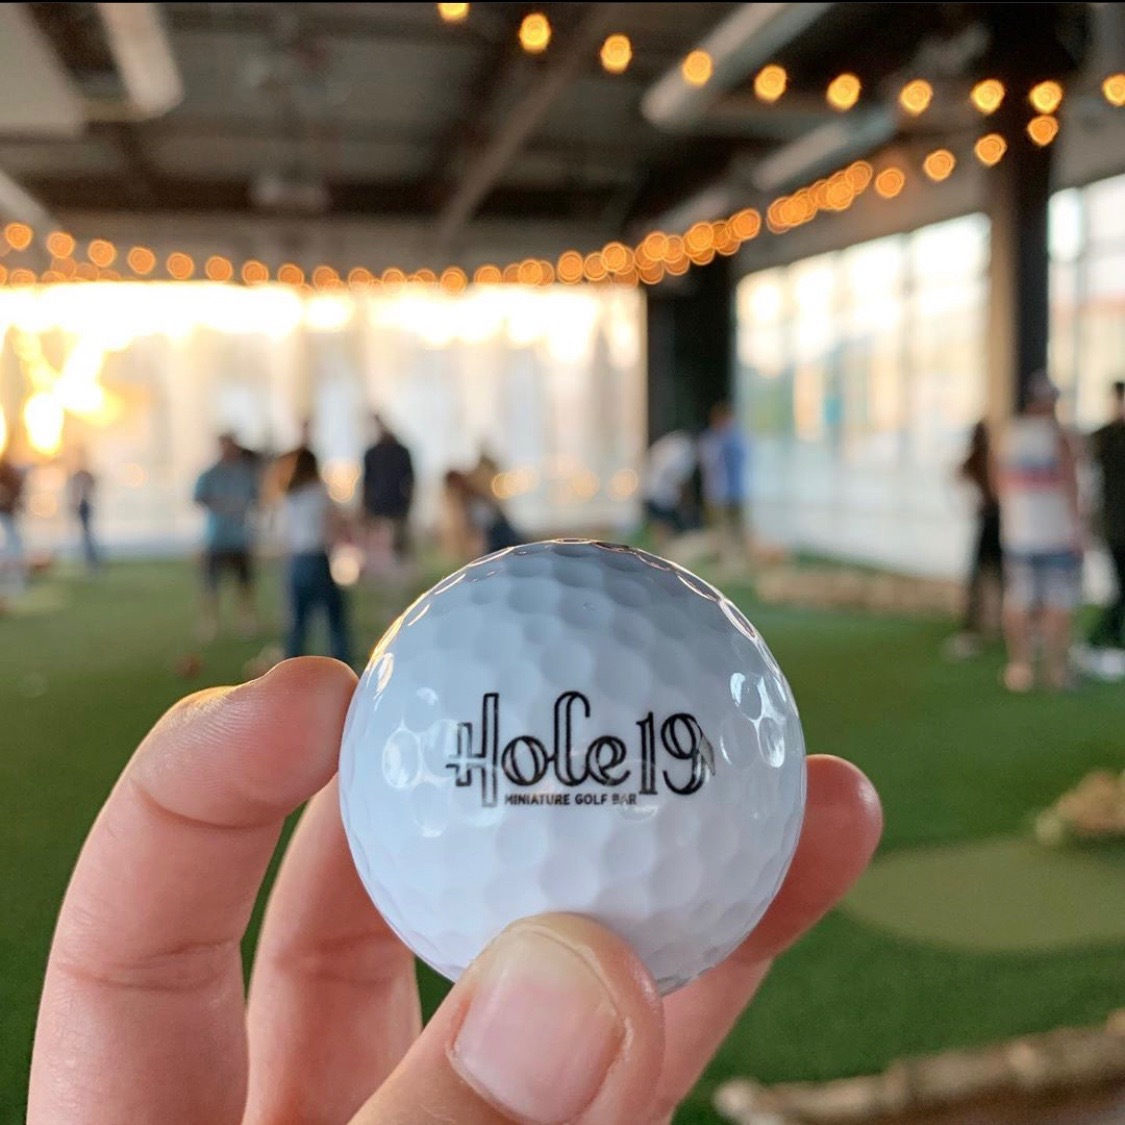 Hole 19, Mini-Golf, Pop-Up, Las Vegas